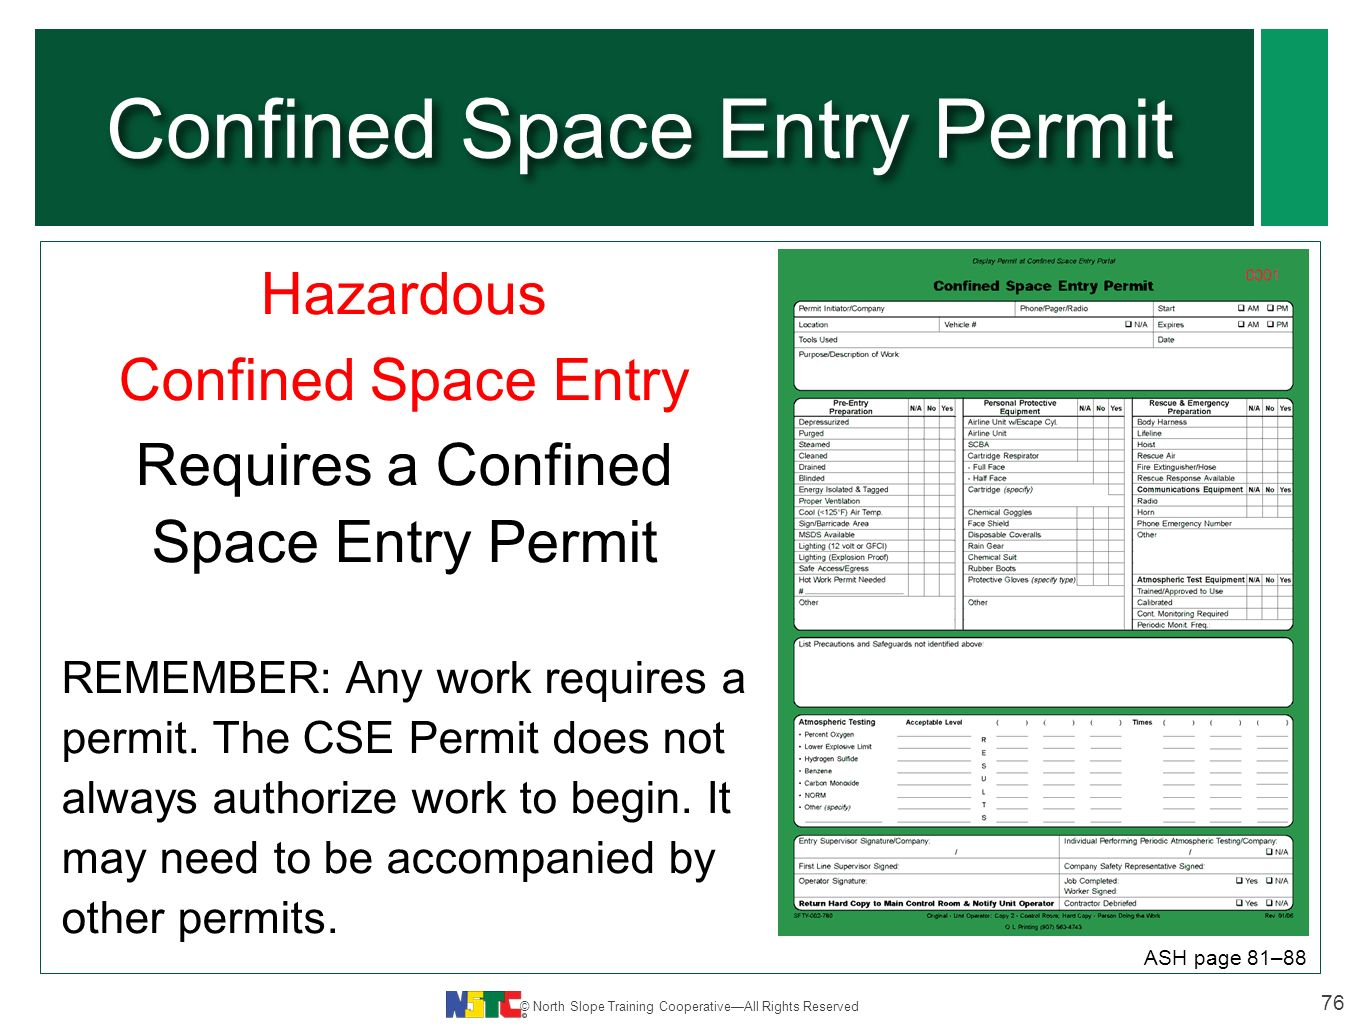 energized electrical work permit template - unique confined space permit template image collection